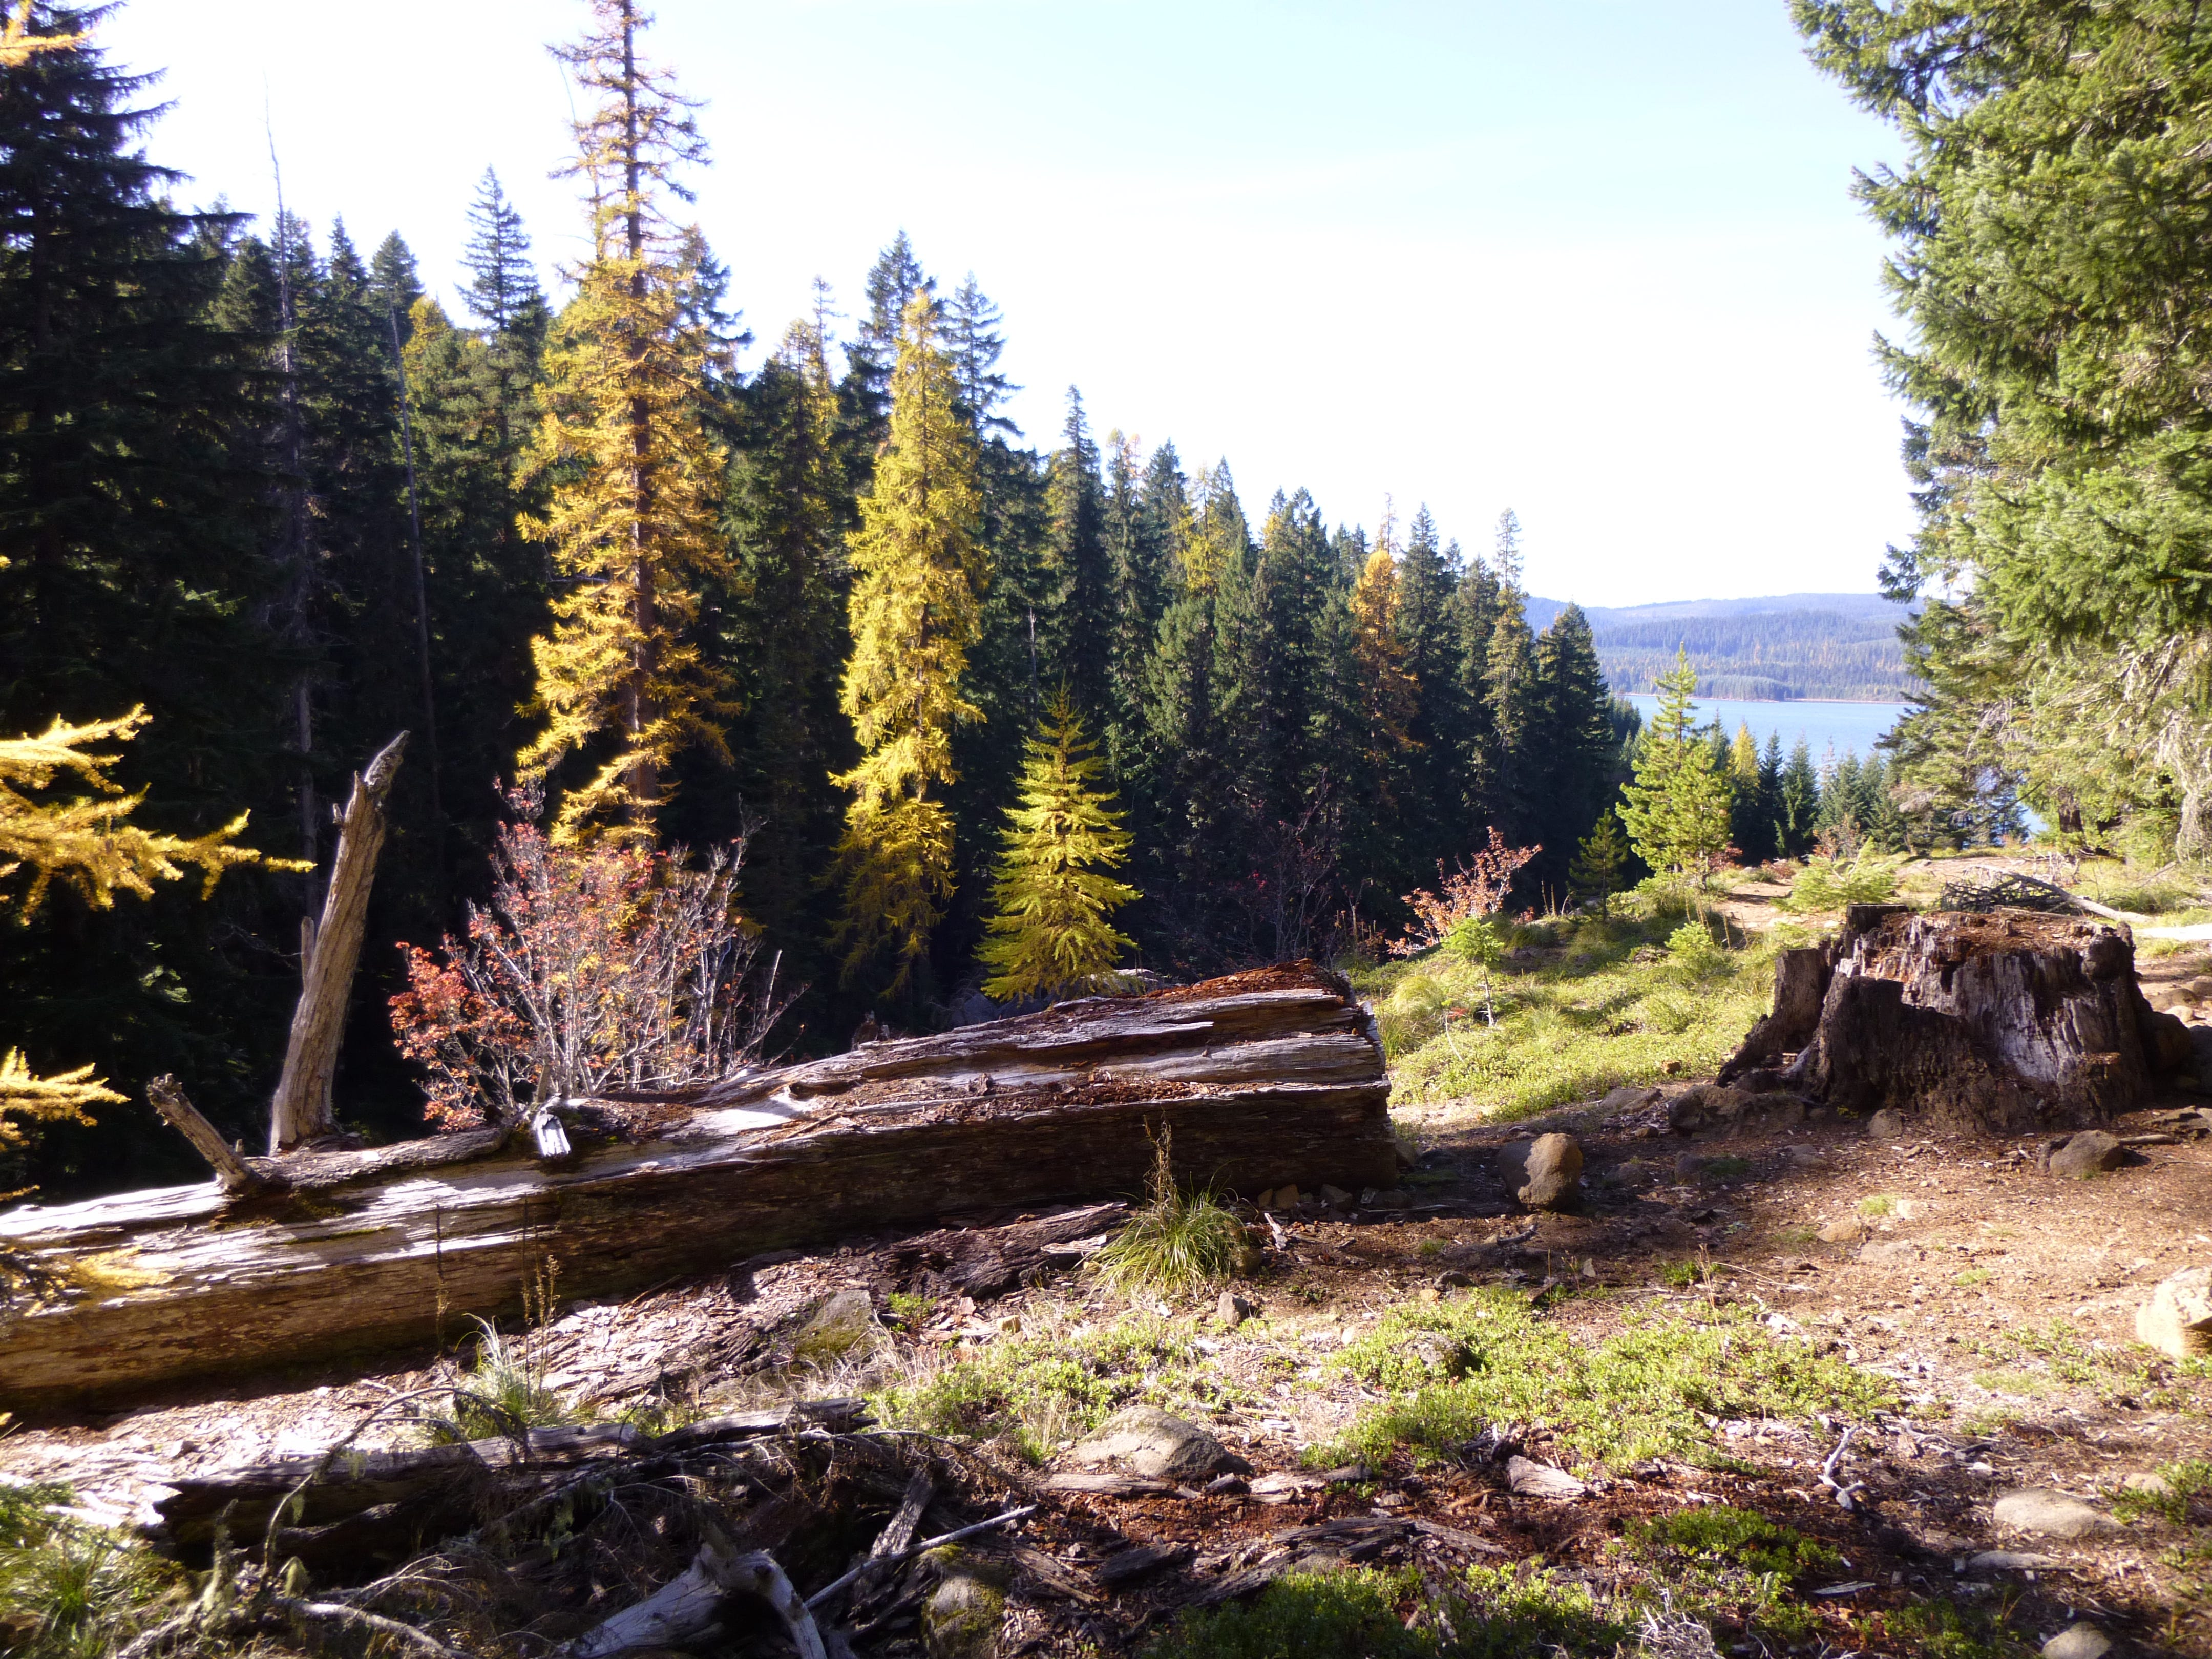 The Pacific Crest Trail follows Timothy Lake for 4 miles.